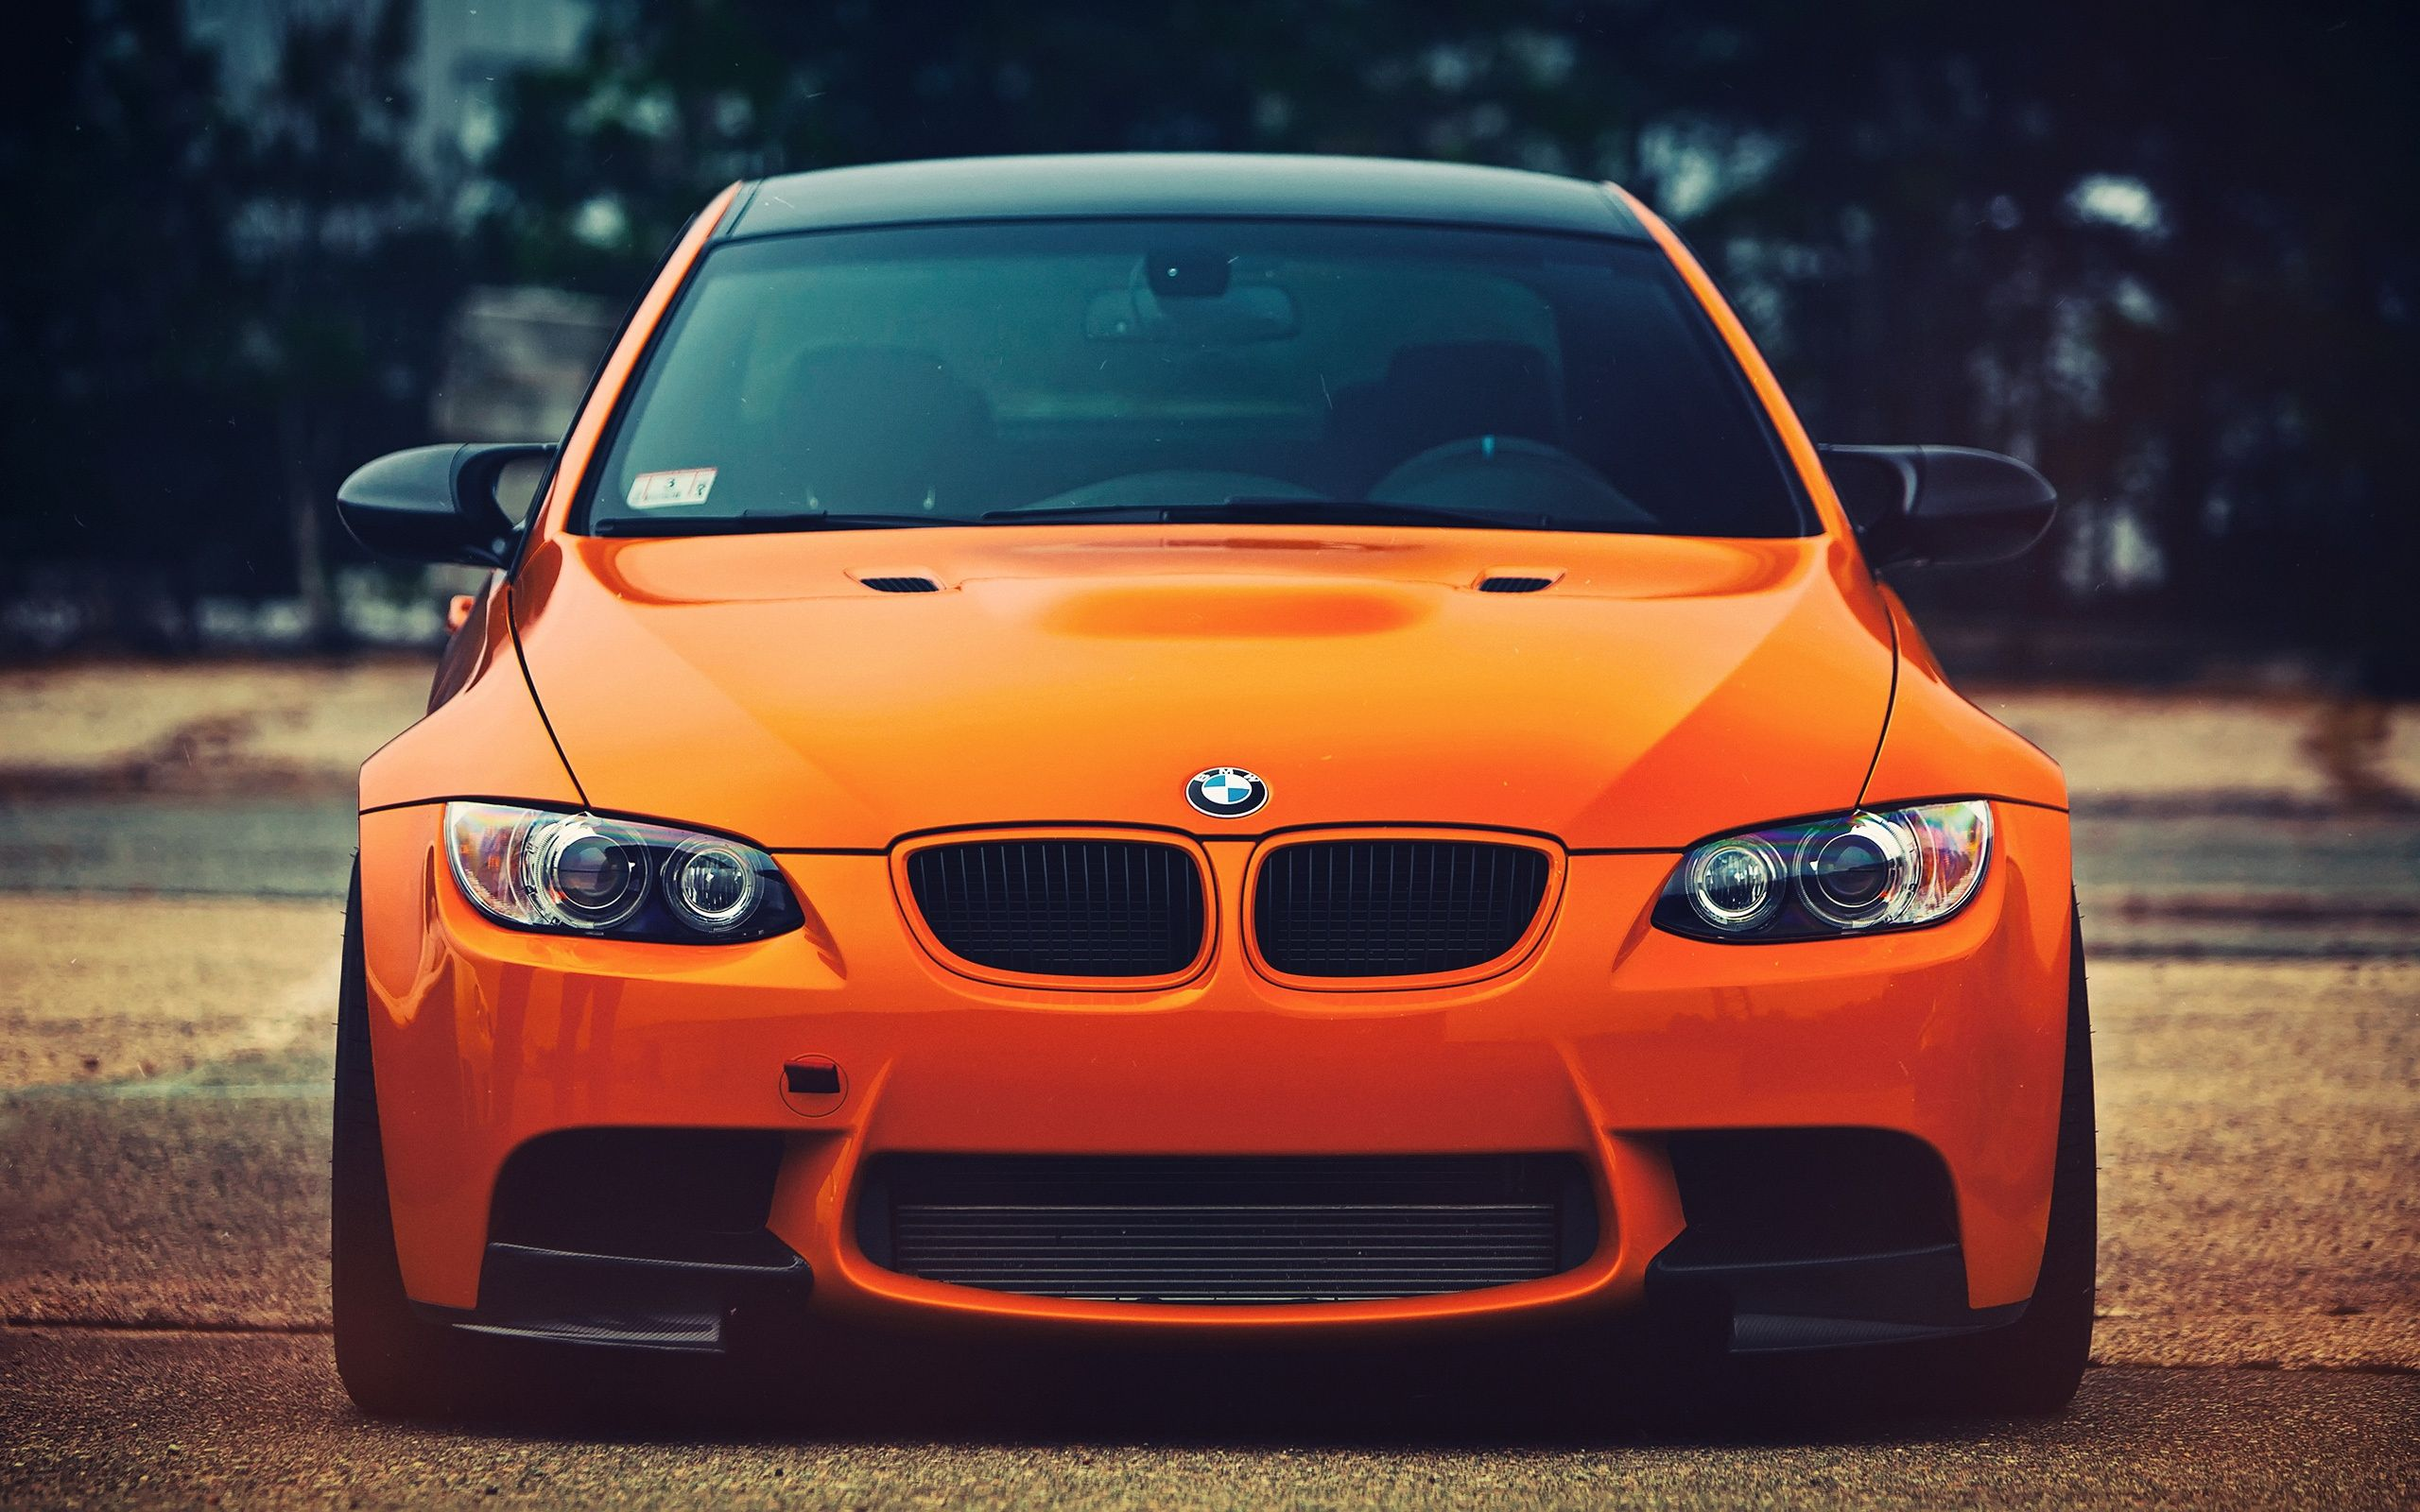 bmw m3 orange car front view wallpapers hd desktop wallpaper  [ 2560 x 1600 Pixel ]